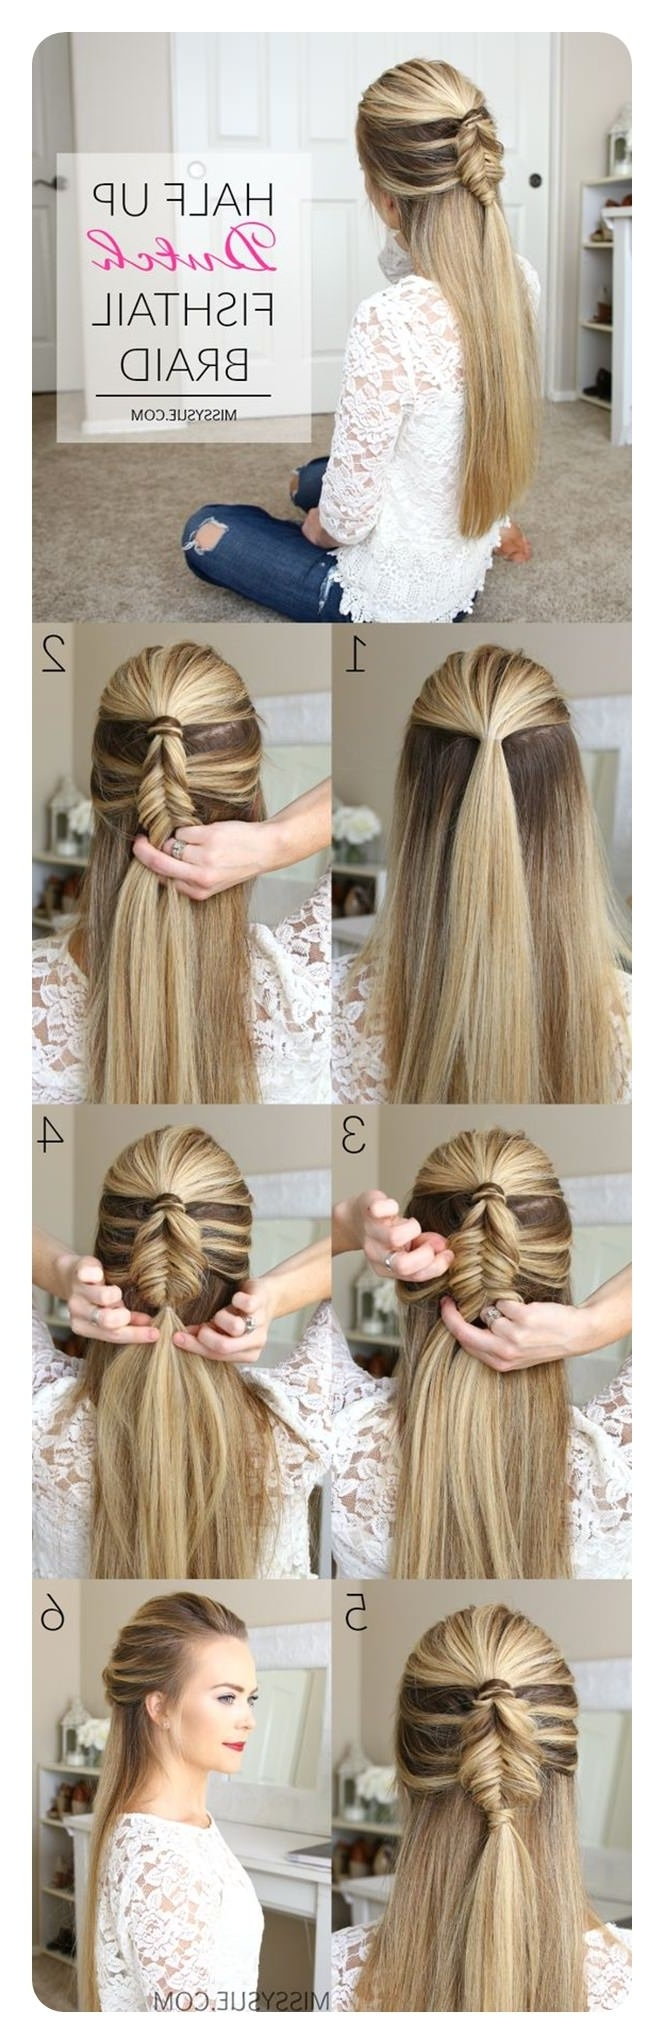 Most Recent Wispy Fishtail Hairstyles With Regard To 94 Incredible Fishtail Braid Ideas With Tutorials (View 13 of 20)